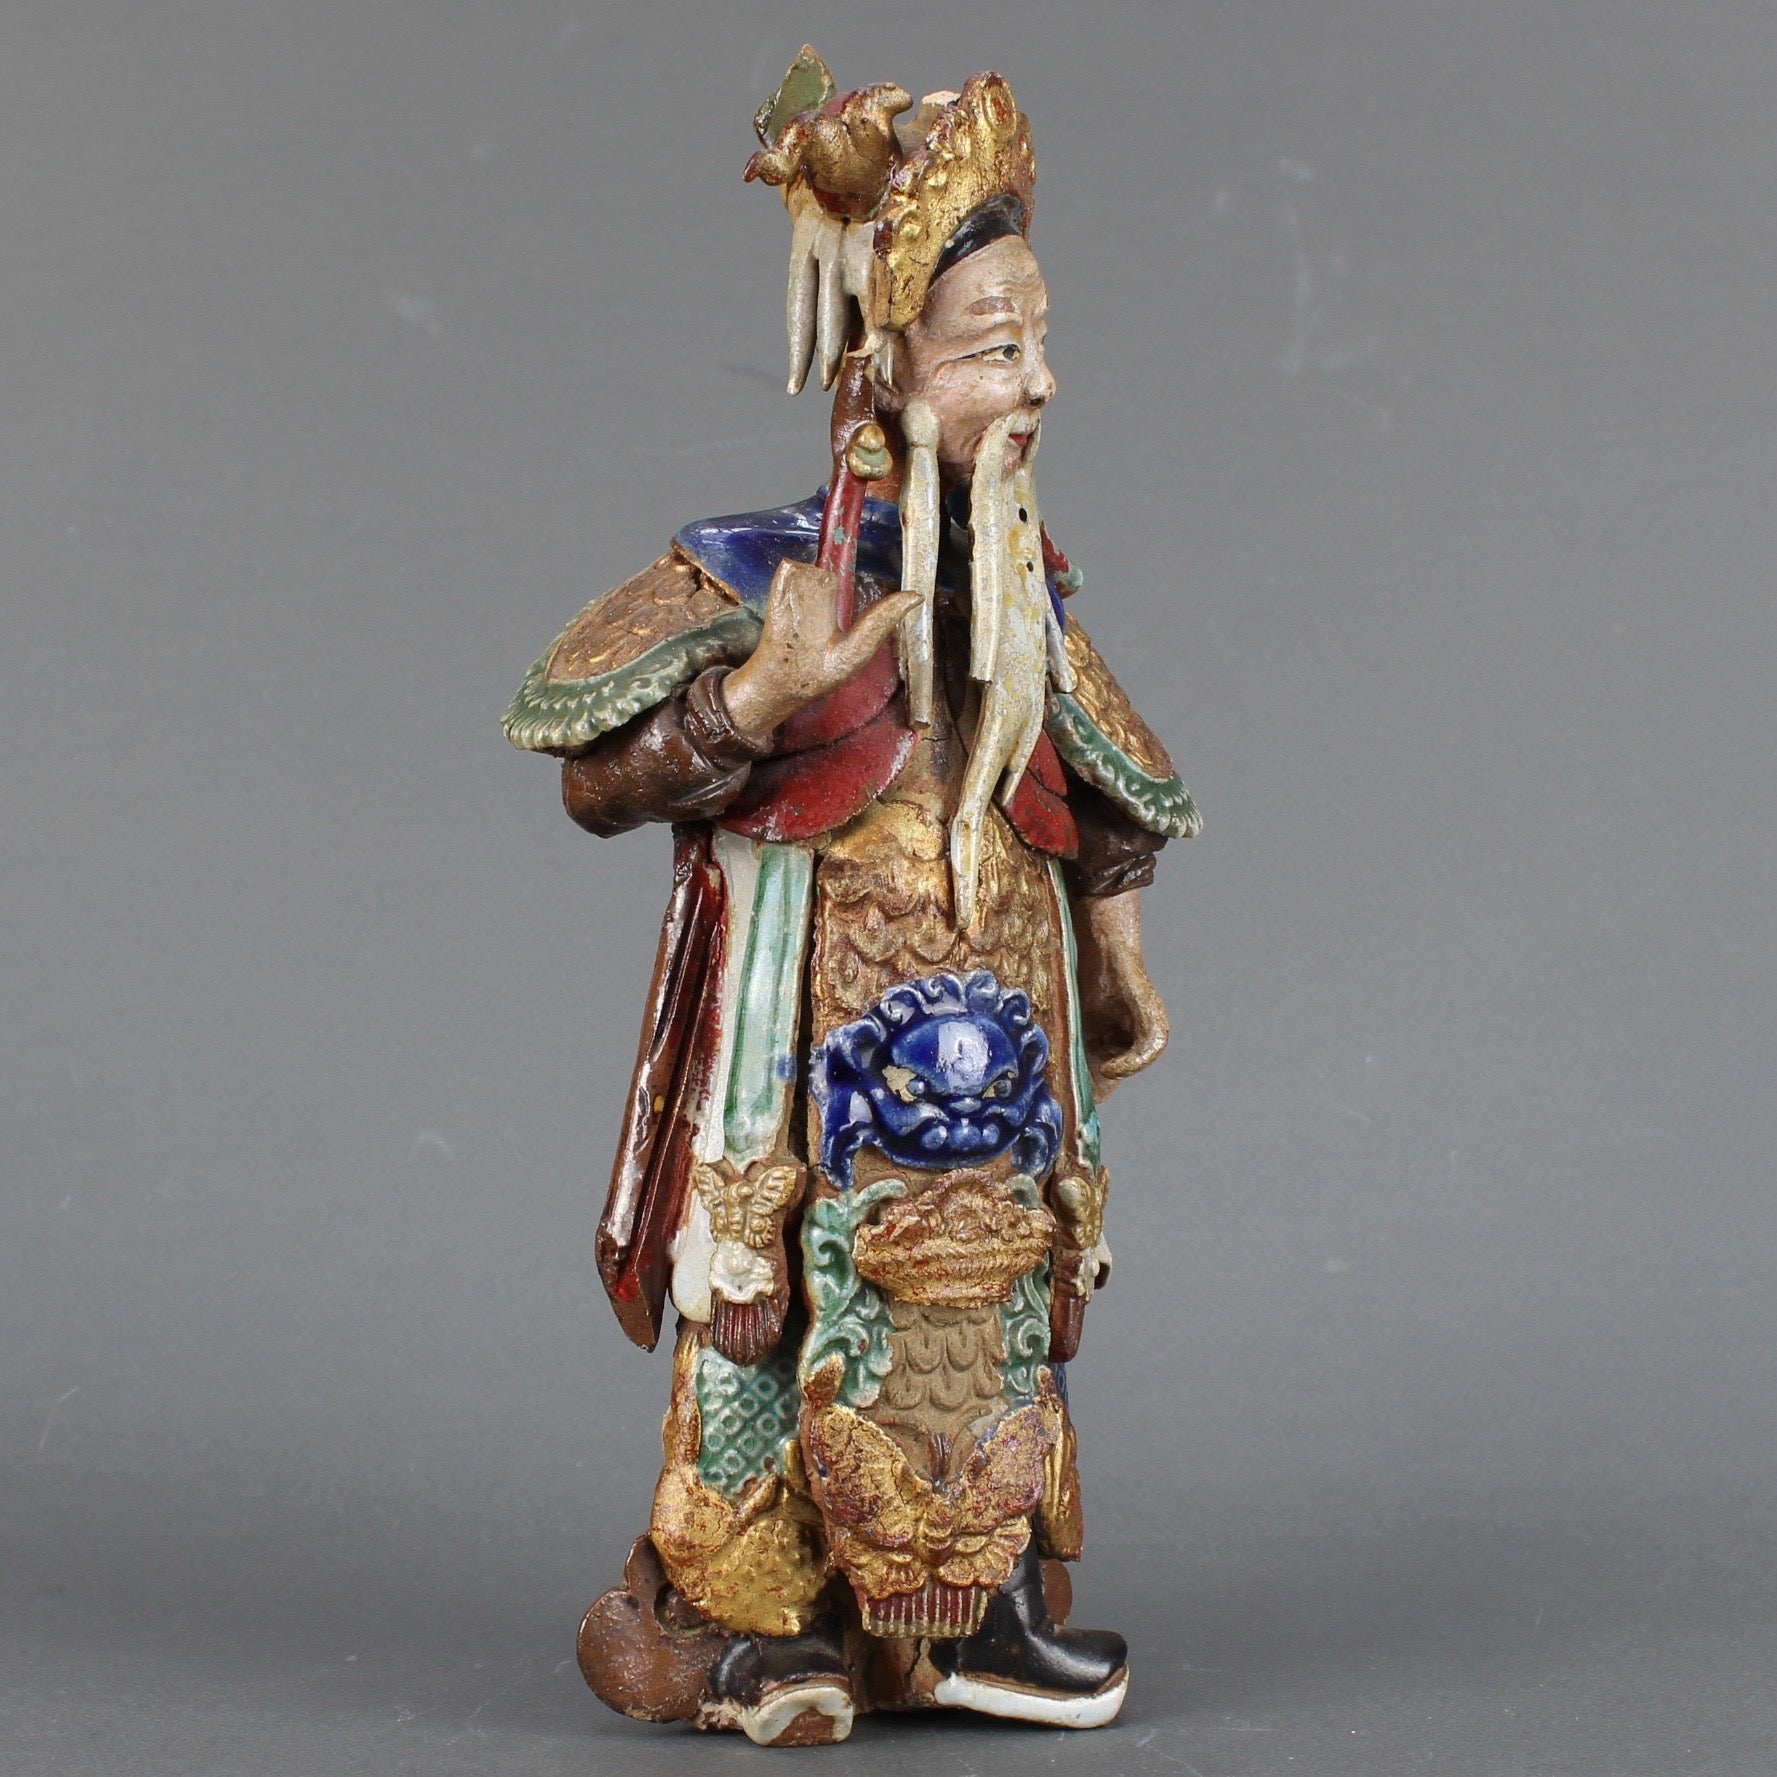 Two 'Chinese Earthenware Decorative Wall-Hanging Figures' (19th Century)